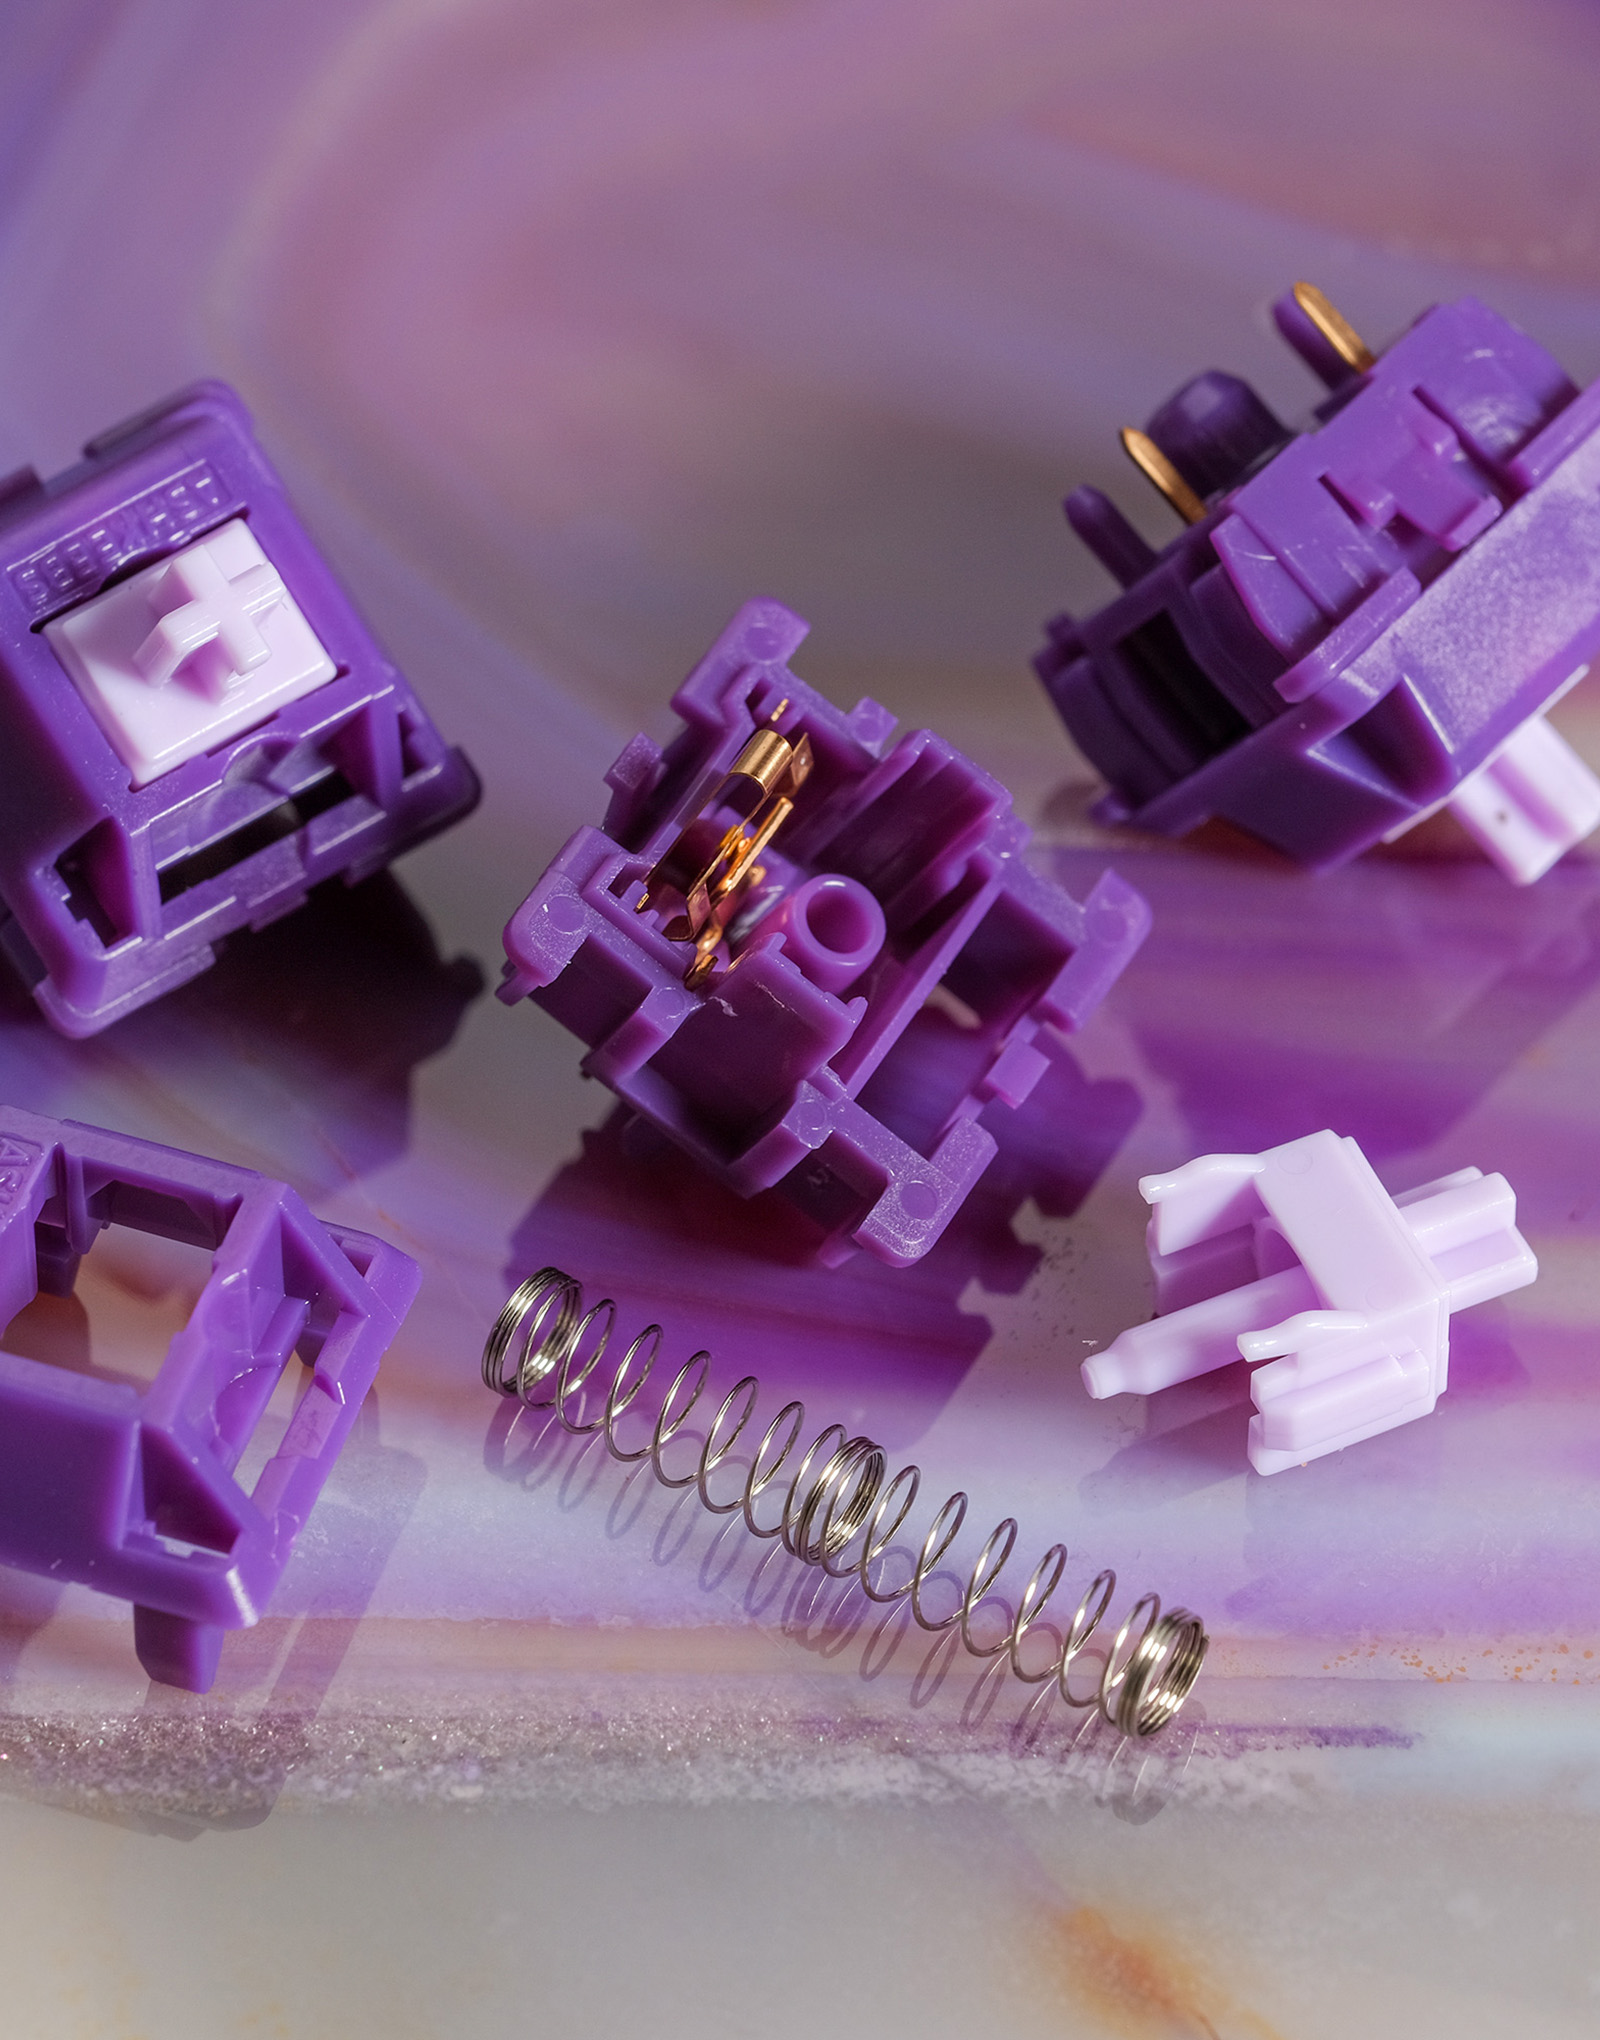 Amethyst Tactile Switches